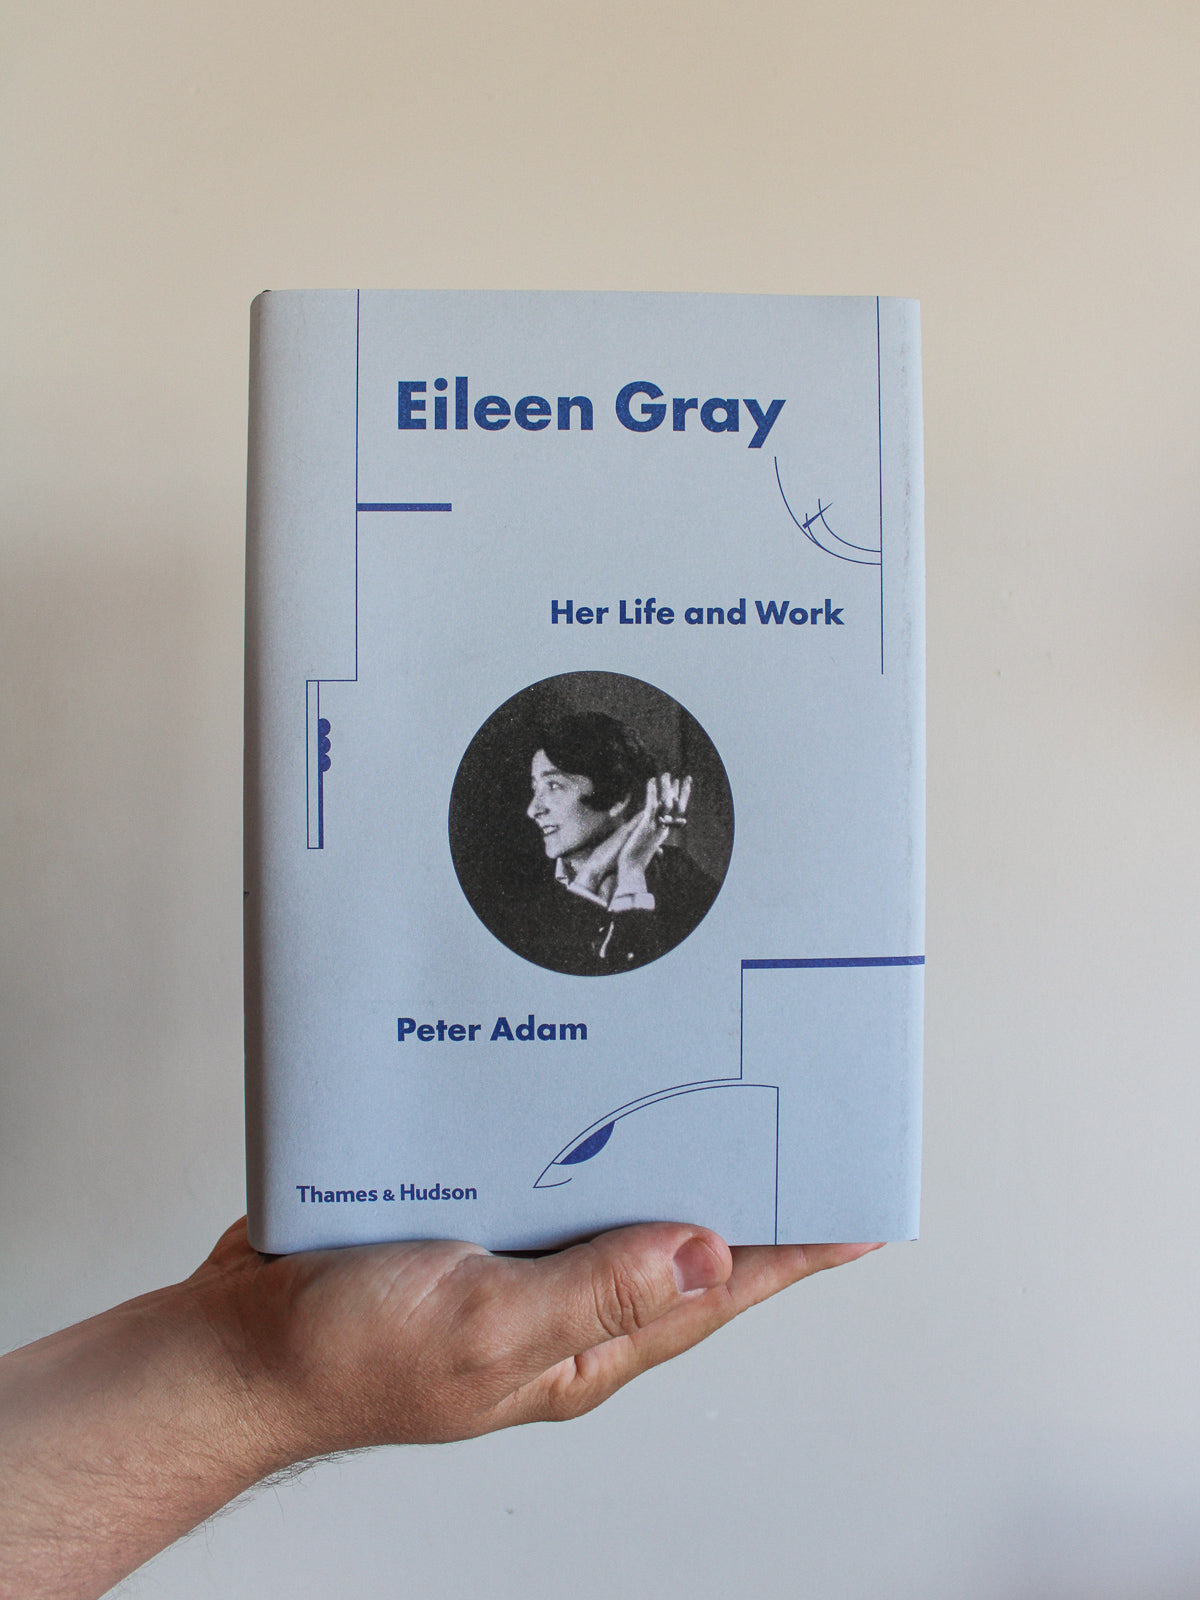 Eileen Grey, Her Life and Work